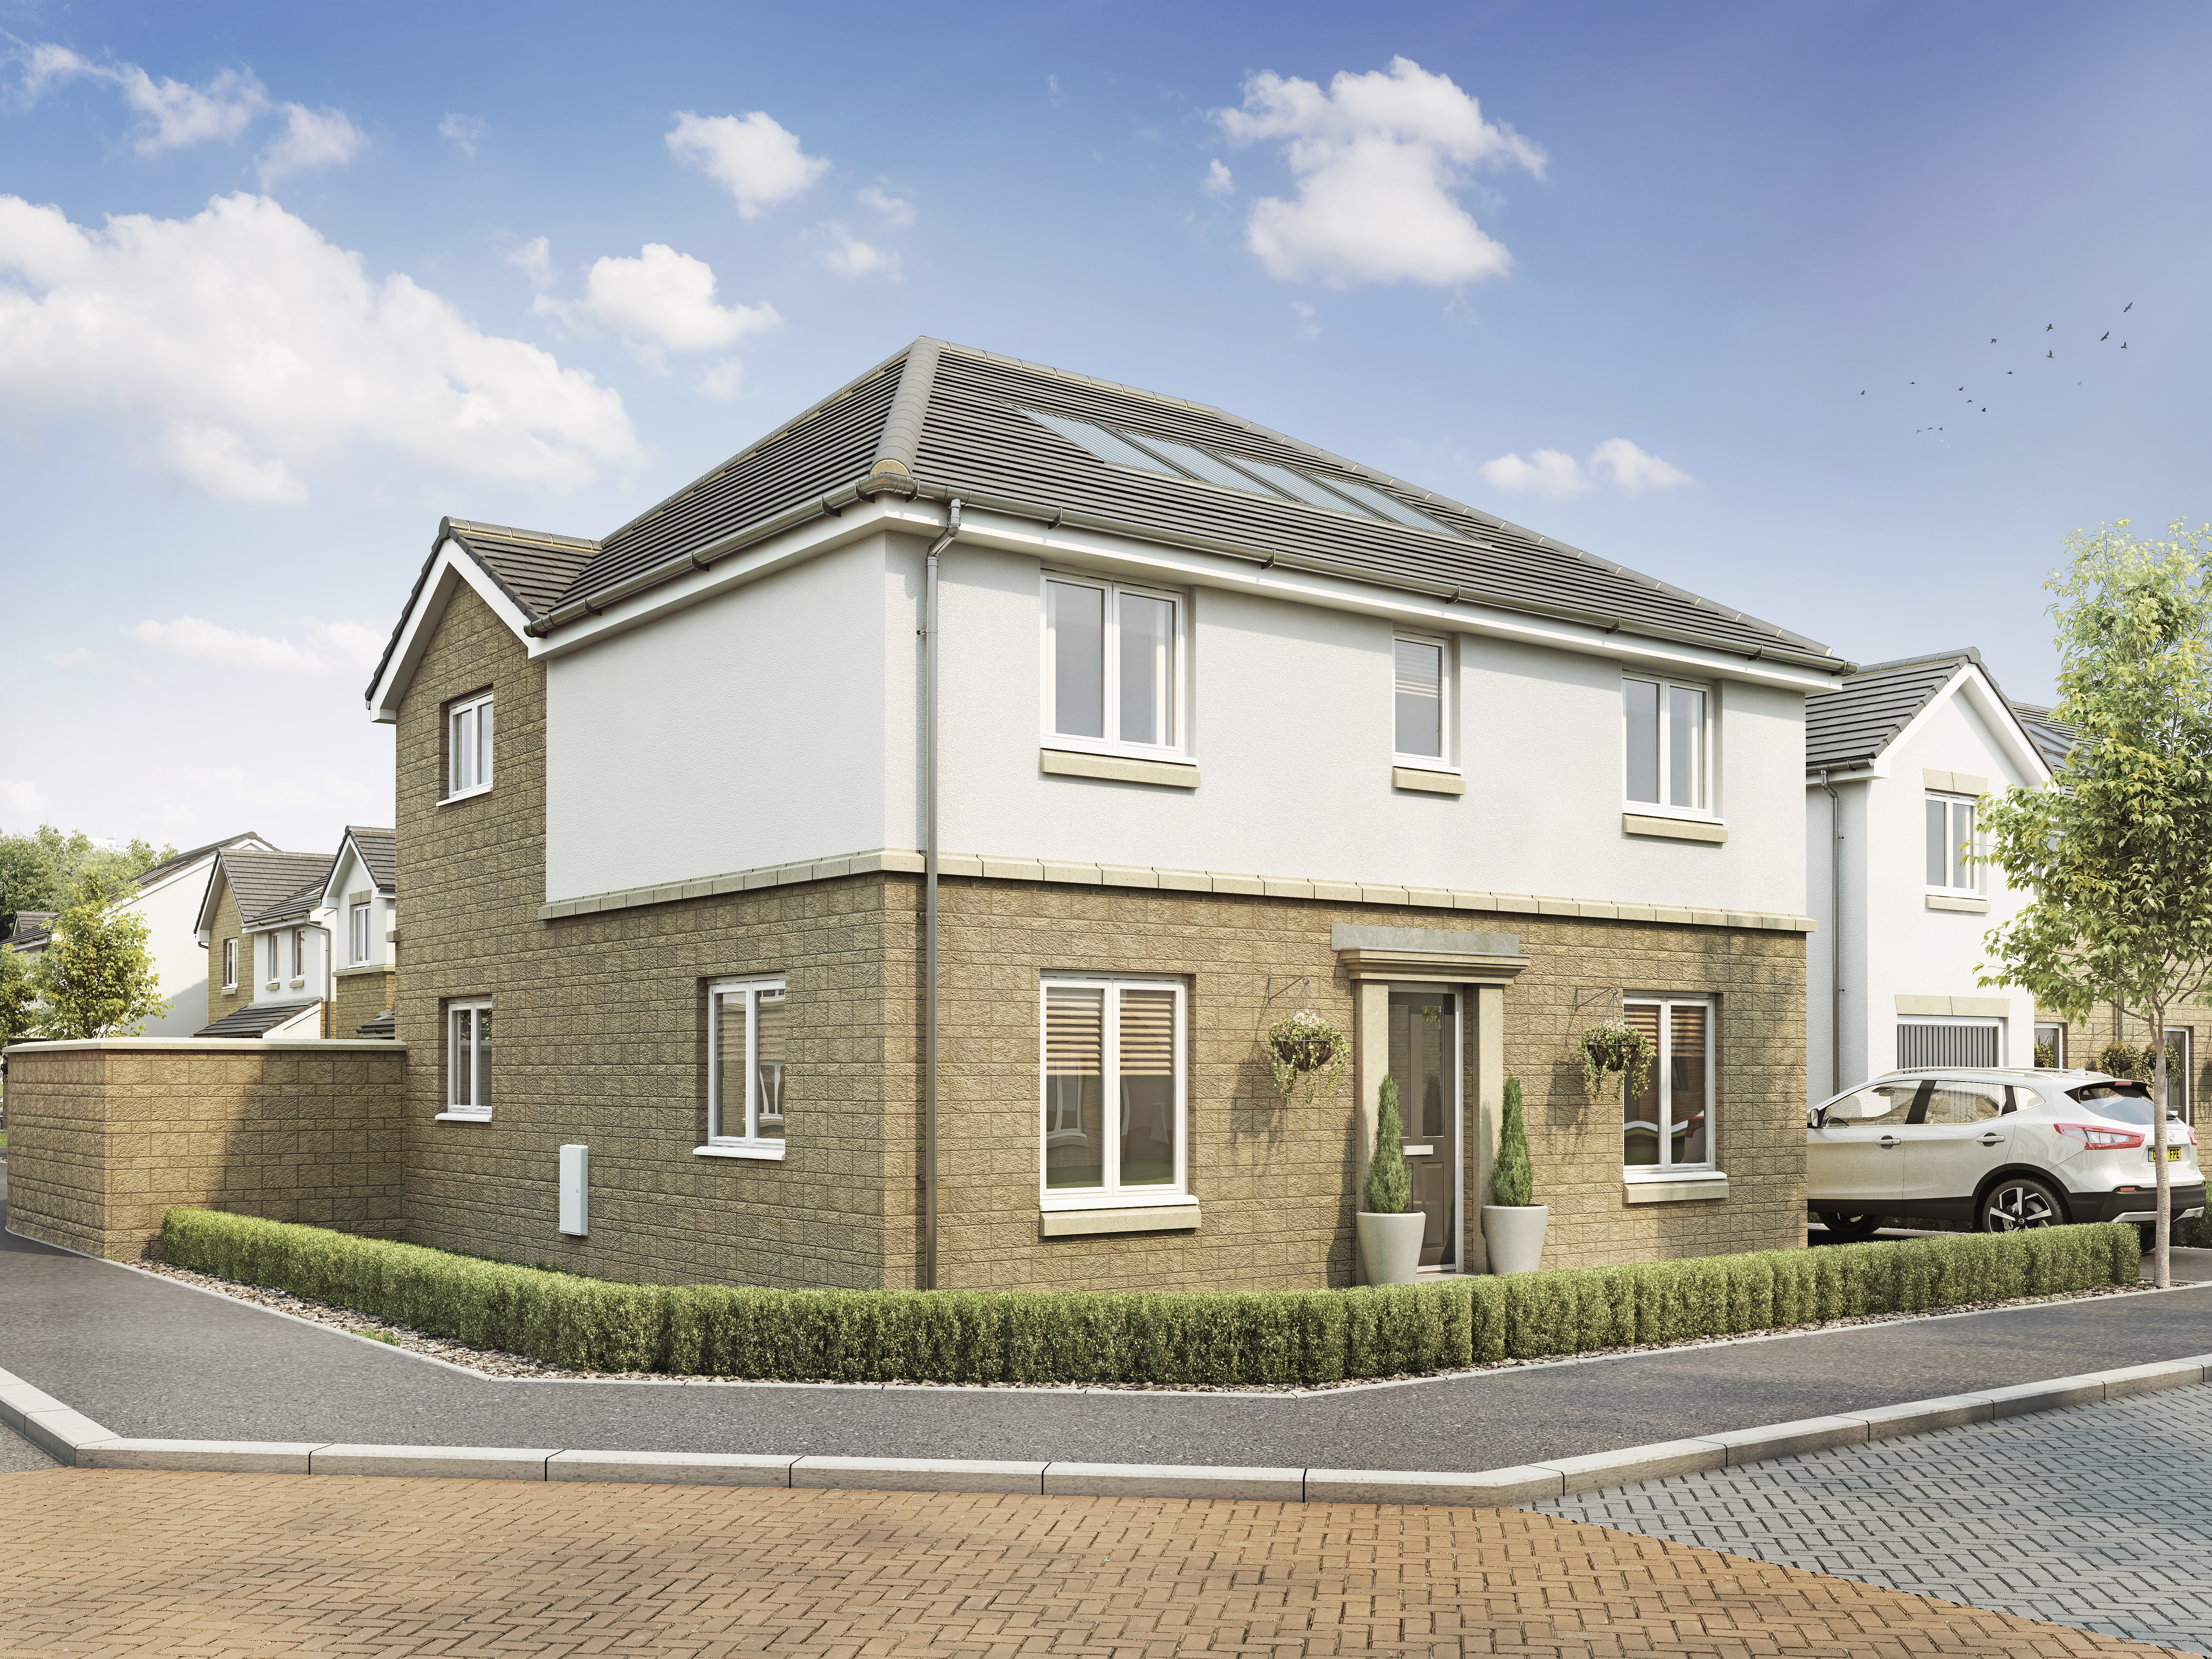 Hume DF - Plot 945